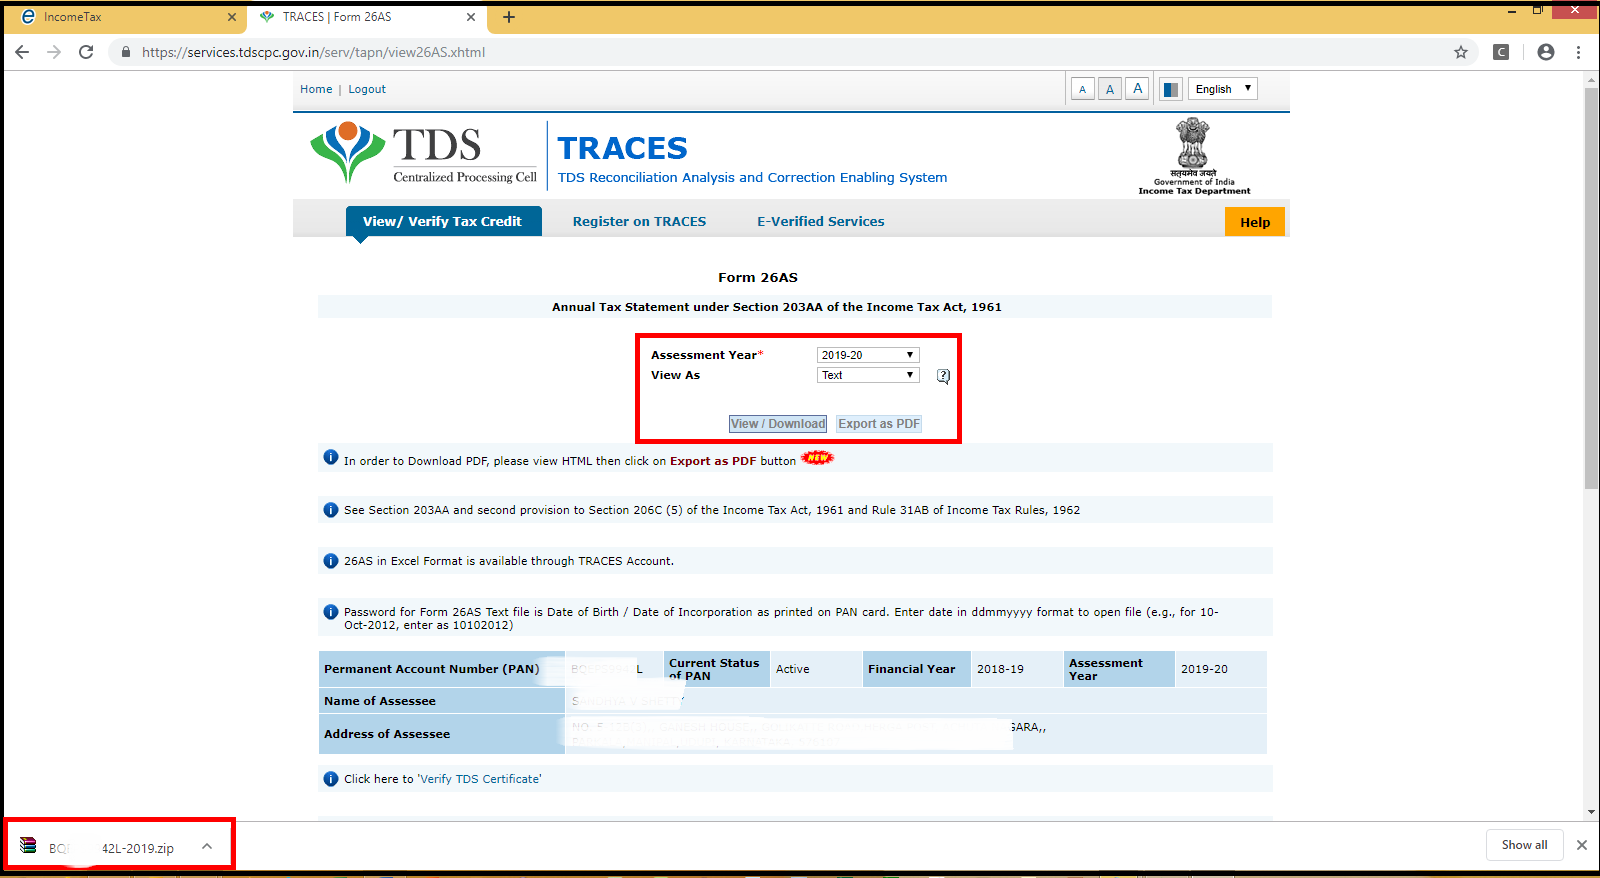 Download and import Form 26AS to Saral Income Tax - form 26AS details